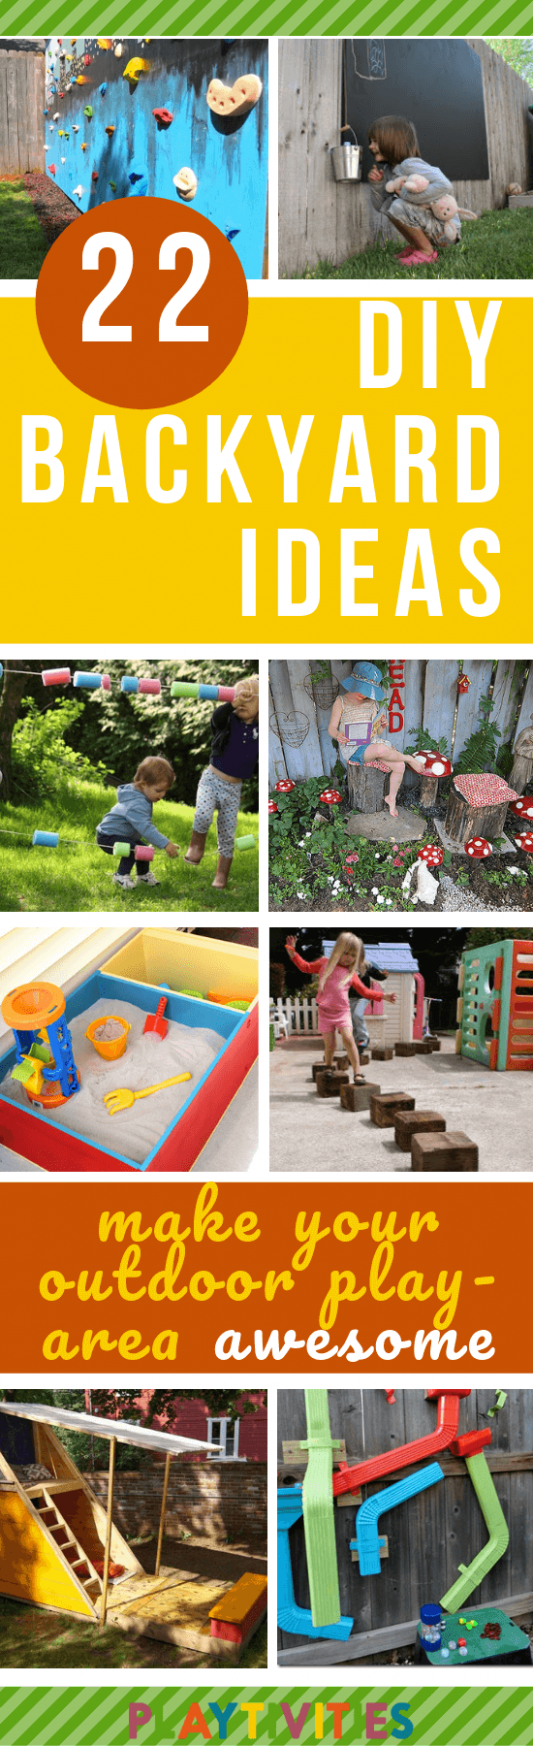 DIY Backyard Ideas For Kids - 12 Easy and Cheap Ideas - PLAYTIVITIES - garden ideas for kids